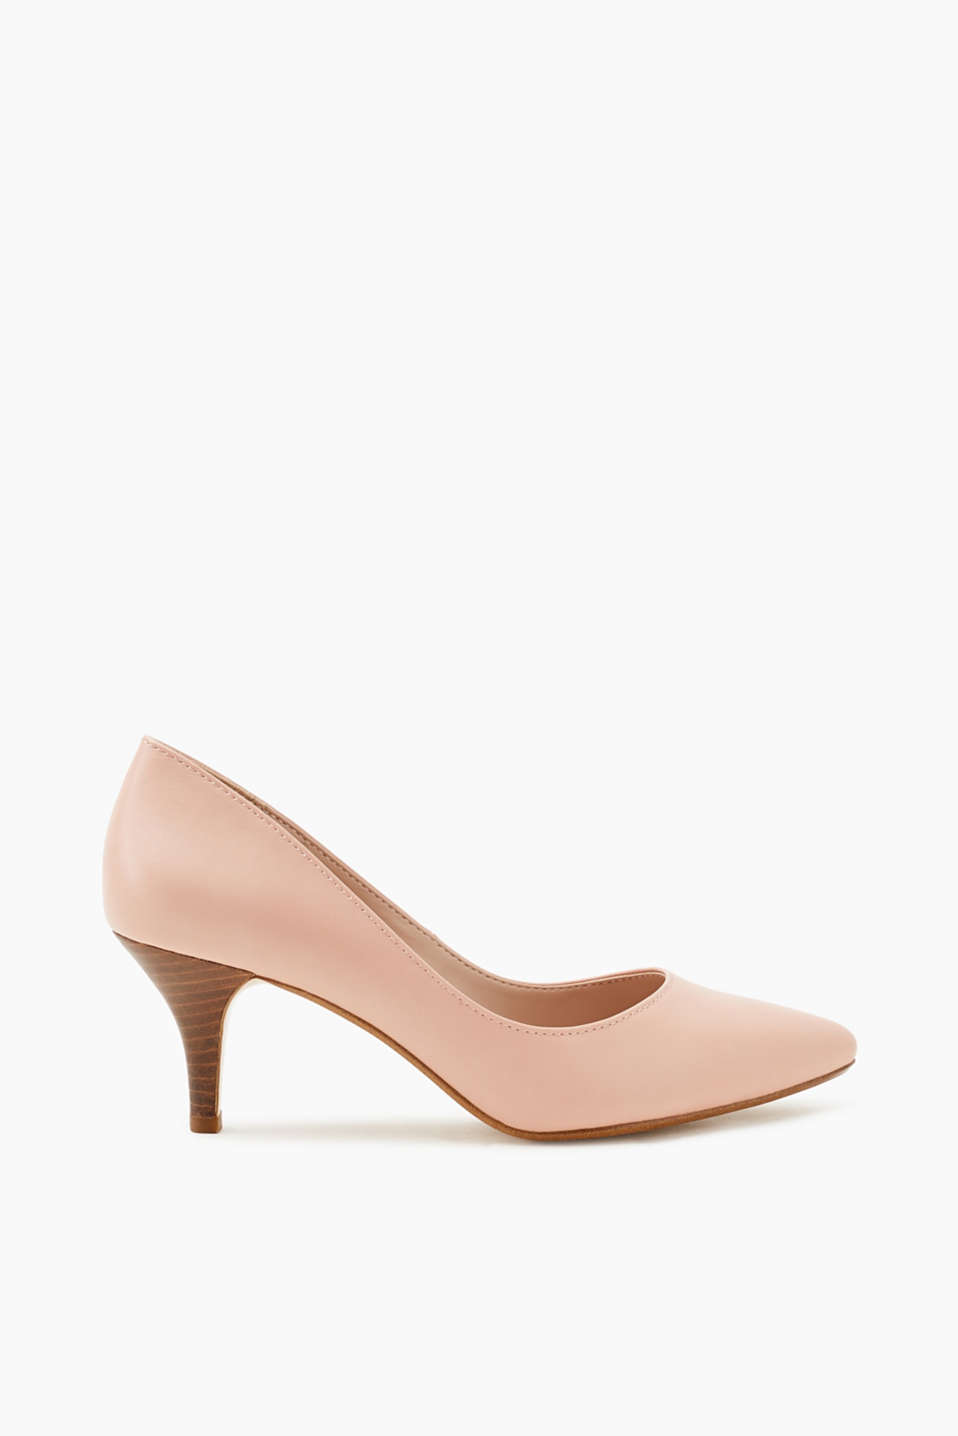 Esprit - Lace court shoes with a wood-look heel